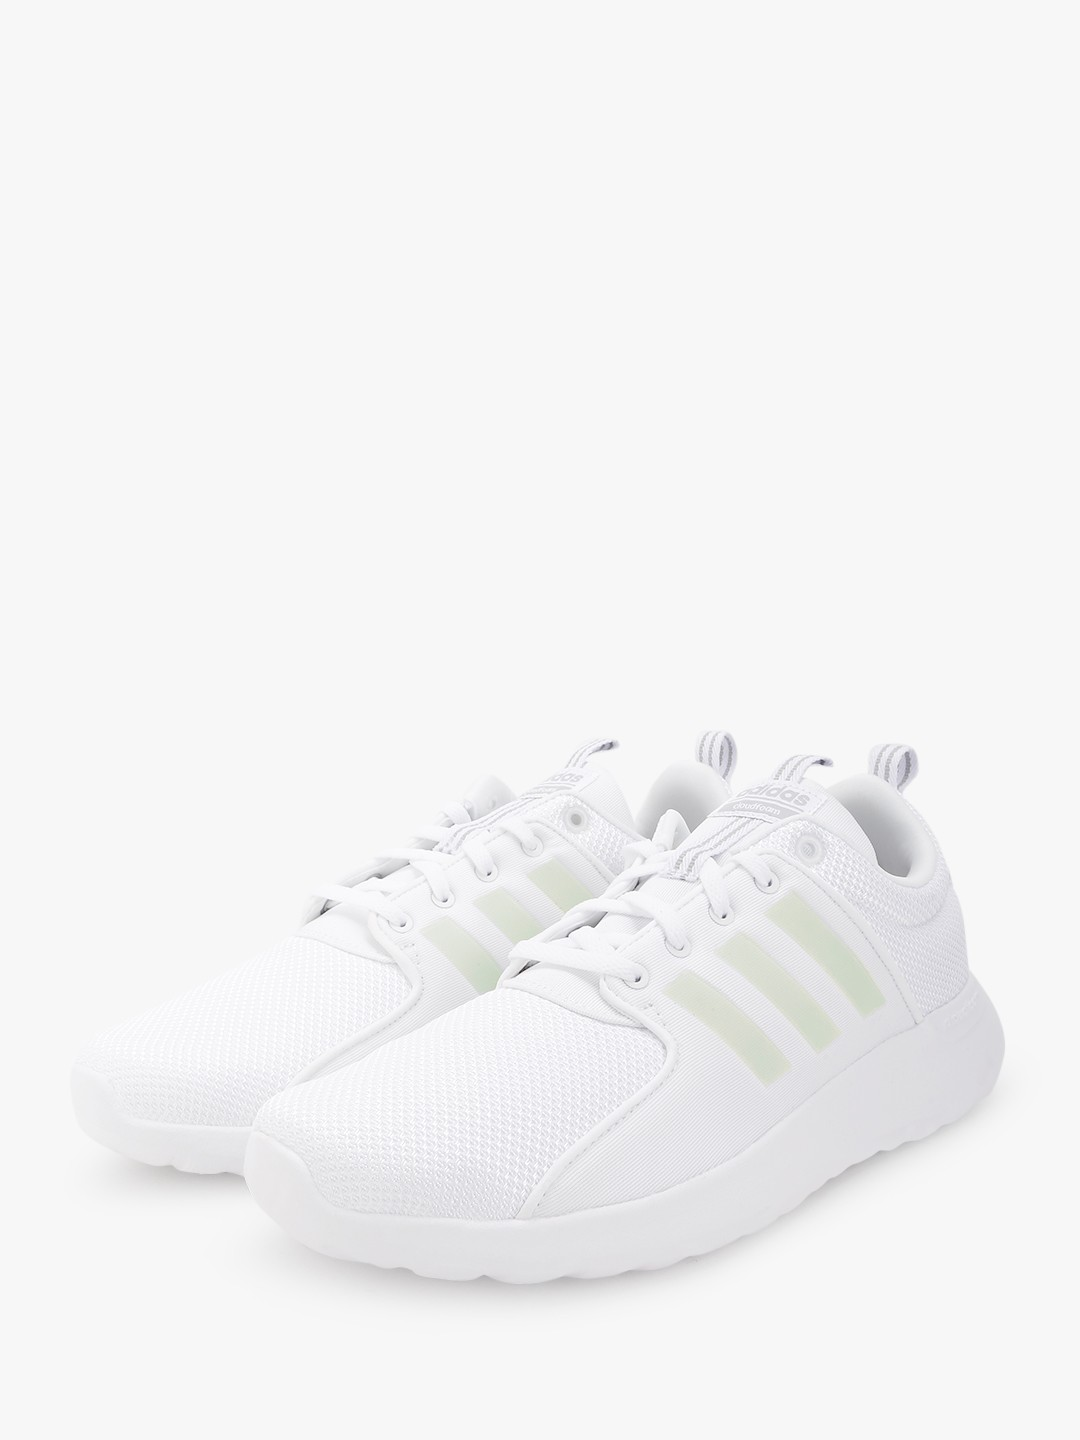 Neo White Navy Red Adidas: Buy Adidas Neo White Cloud Foam Lite Racer Trainers For